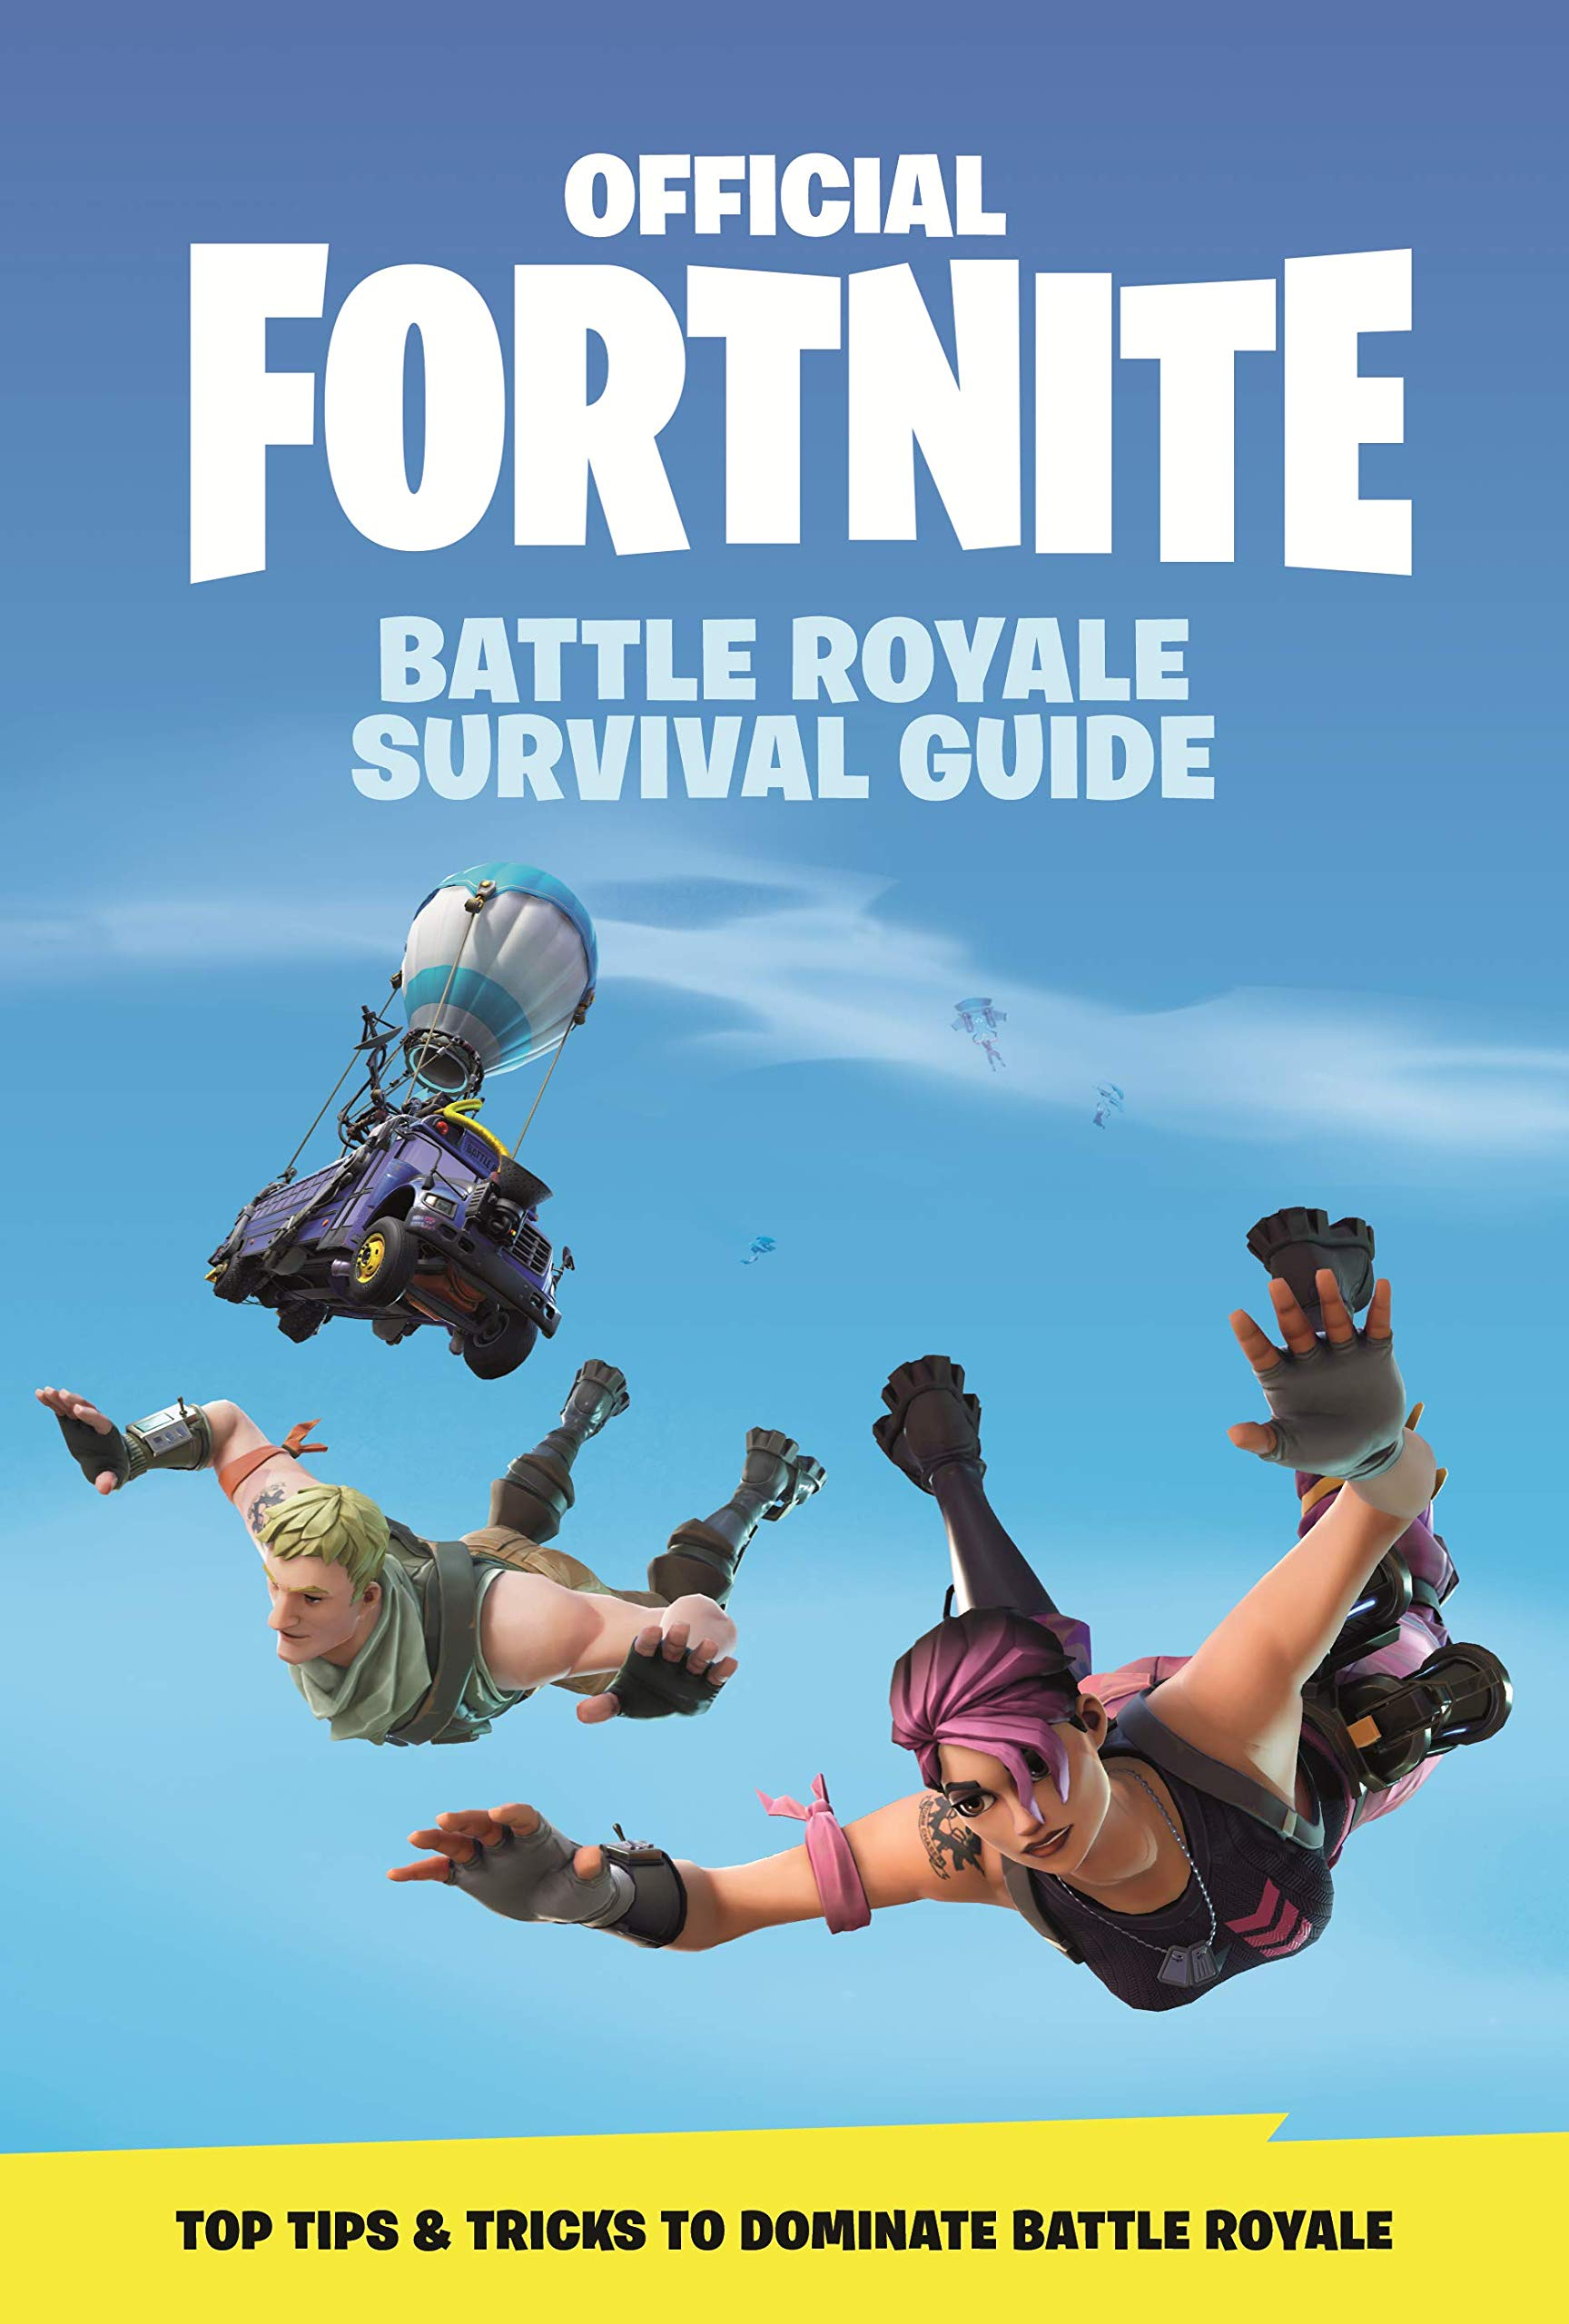 The cover for the Fortnite: Battle Royale Survival Guide, which features free-falling characters.